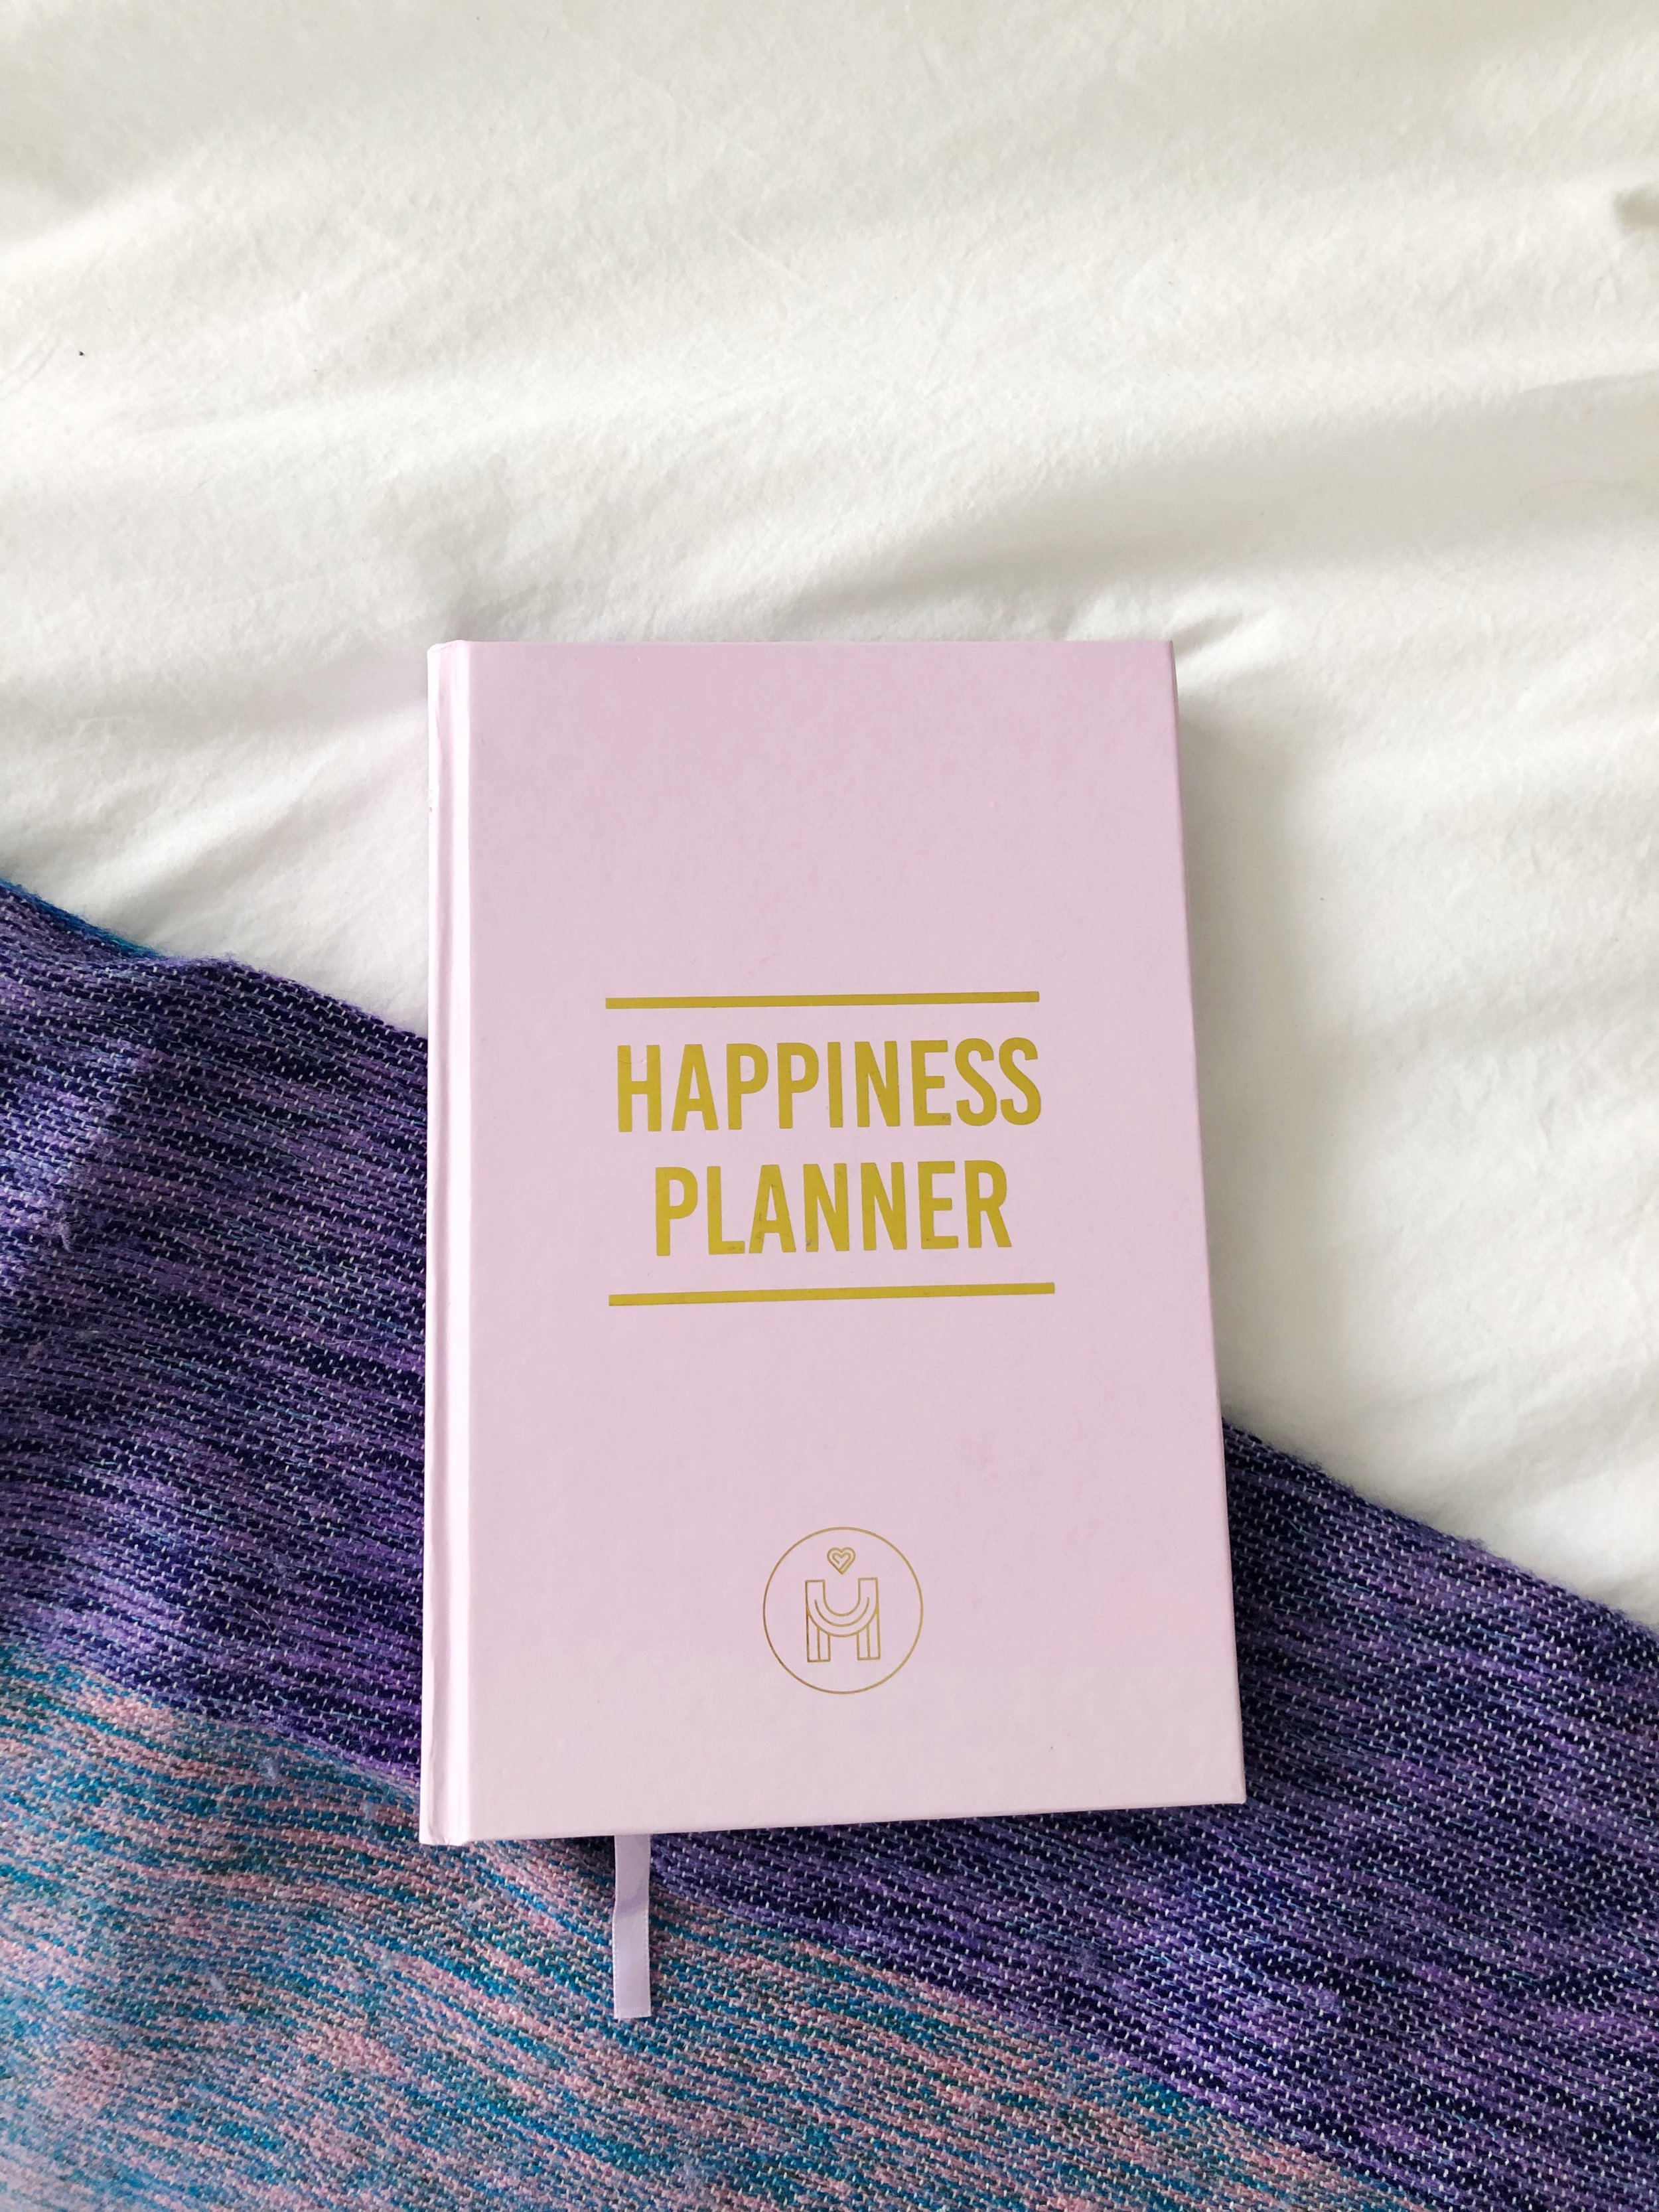 For 100 days I will journal in  The Happiness Planner .